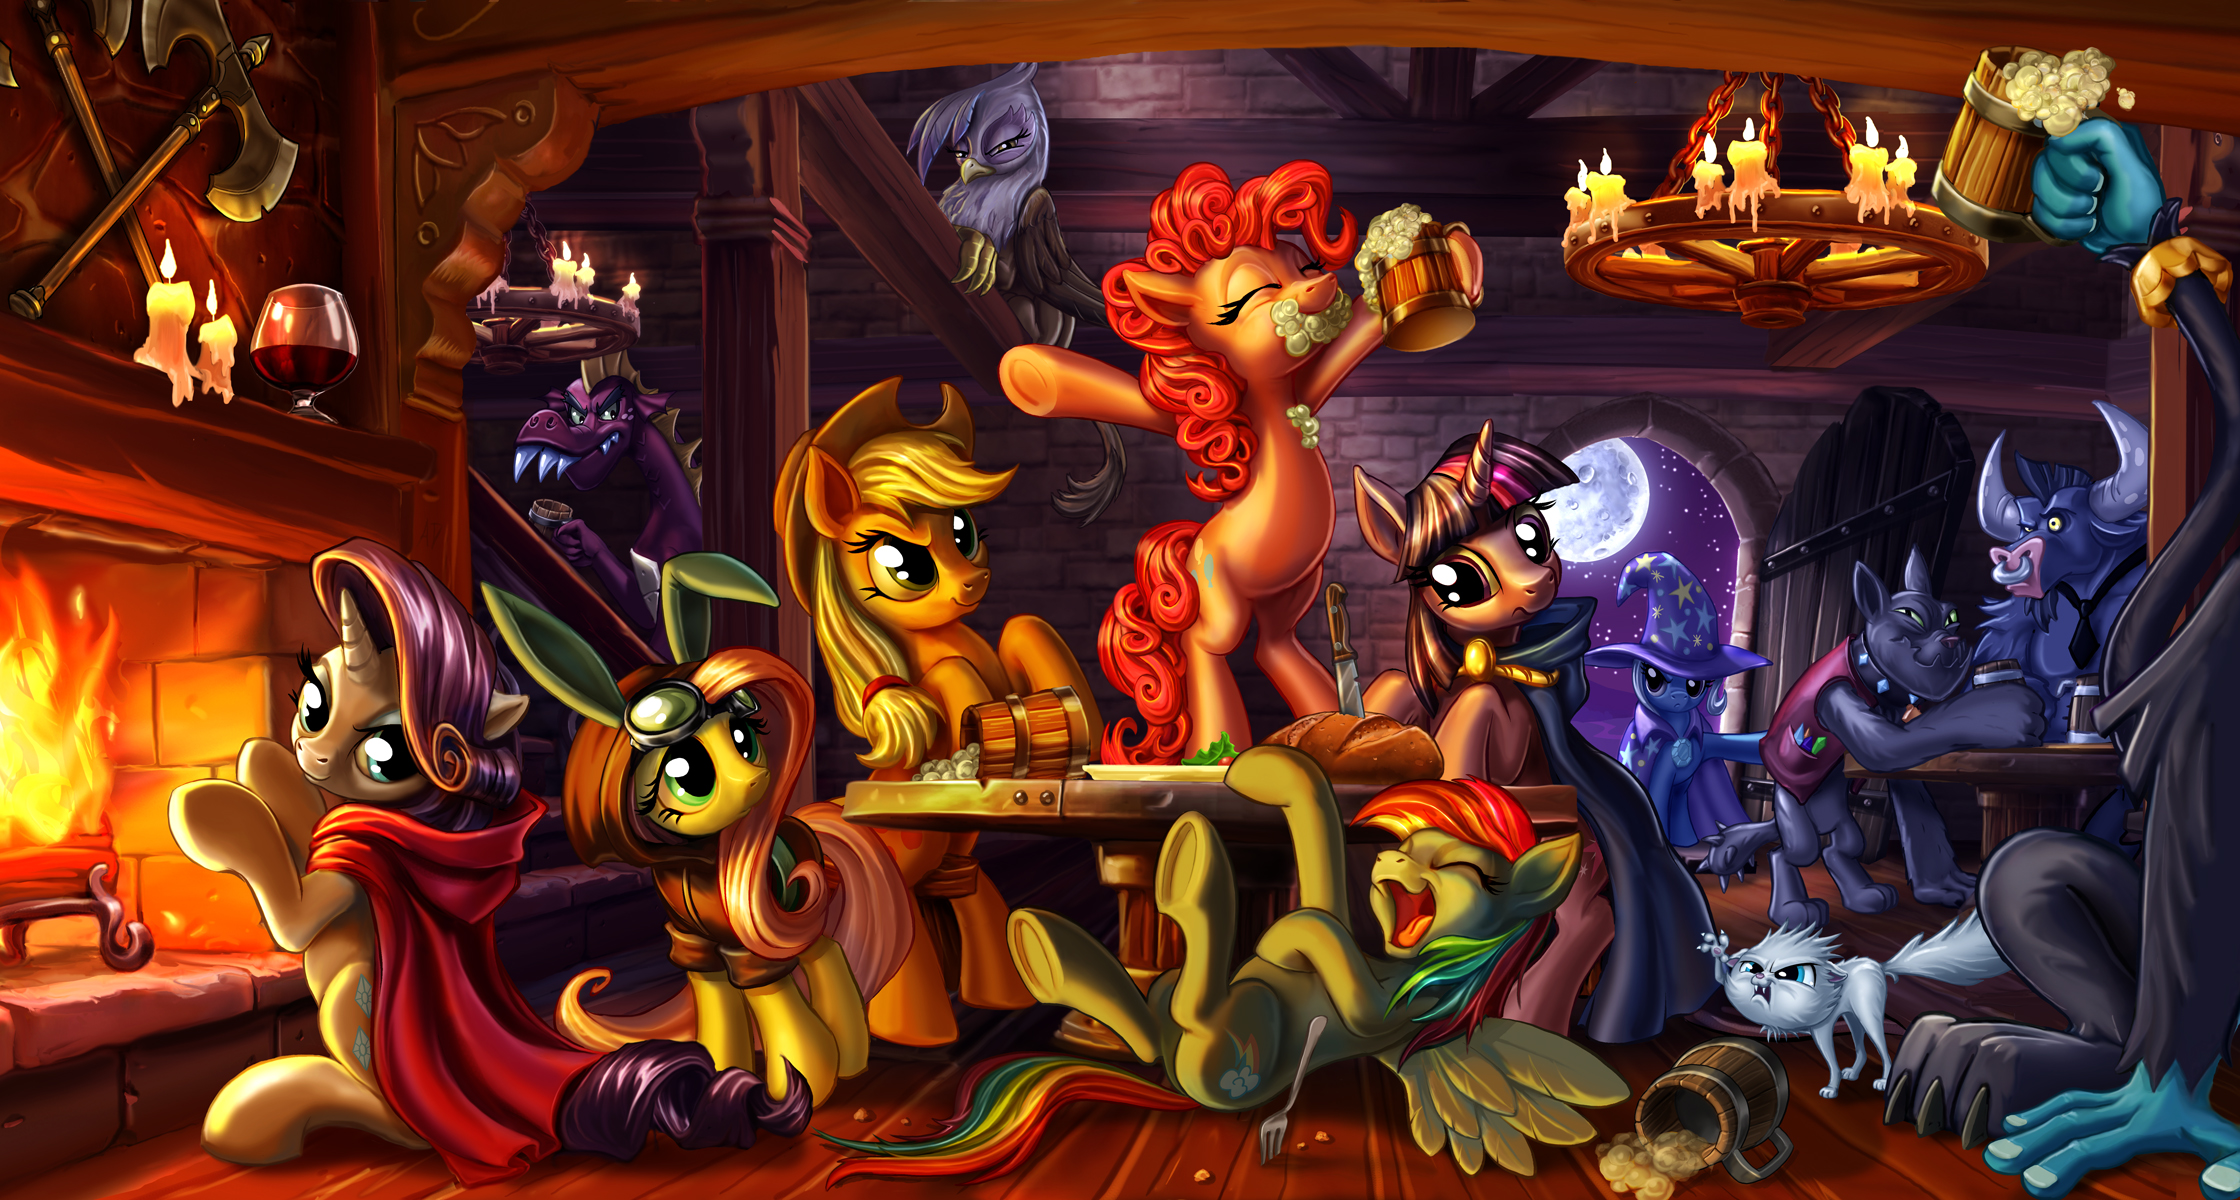 The Wrong Crowd for a Celebration by harwicks-art